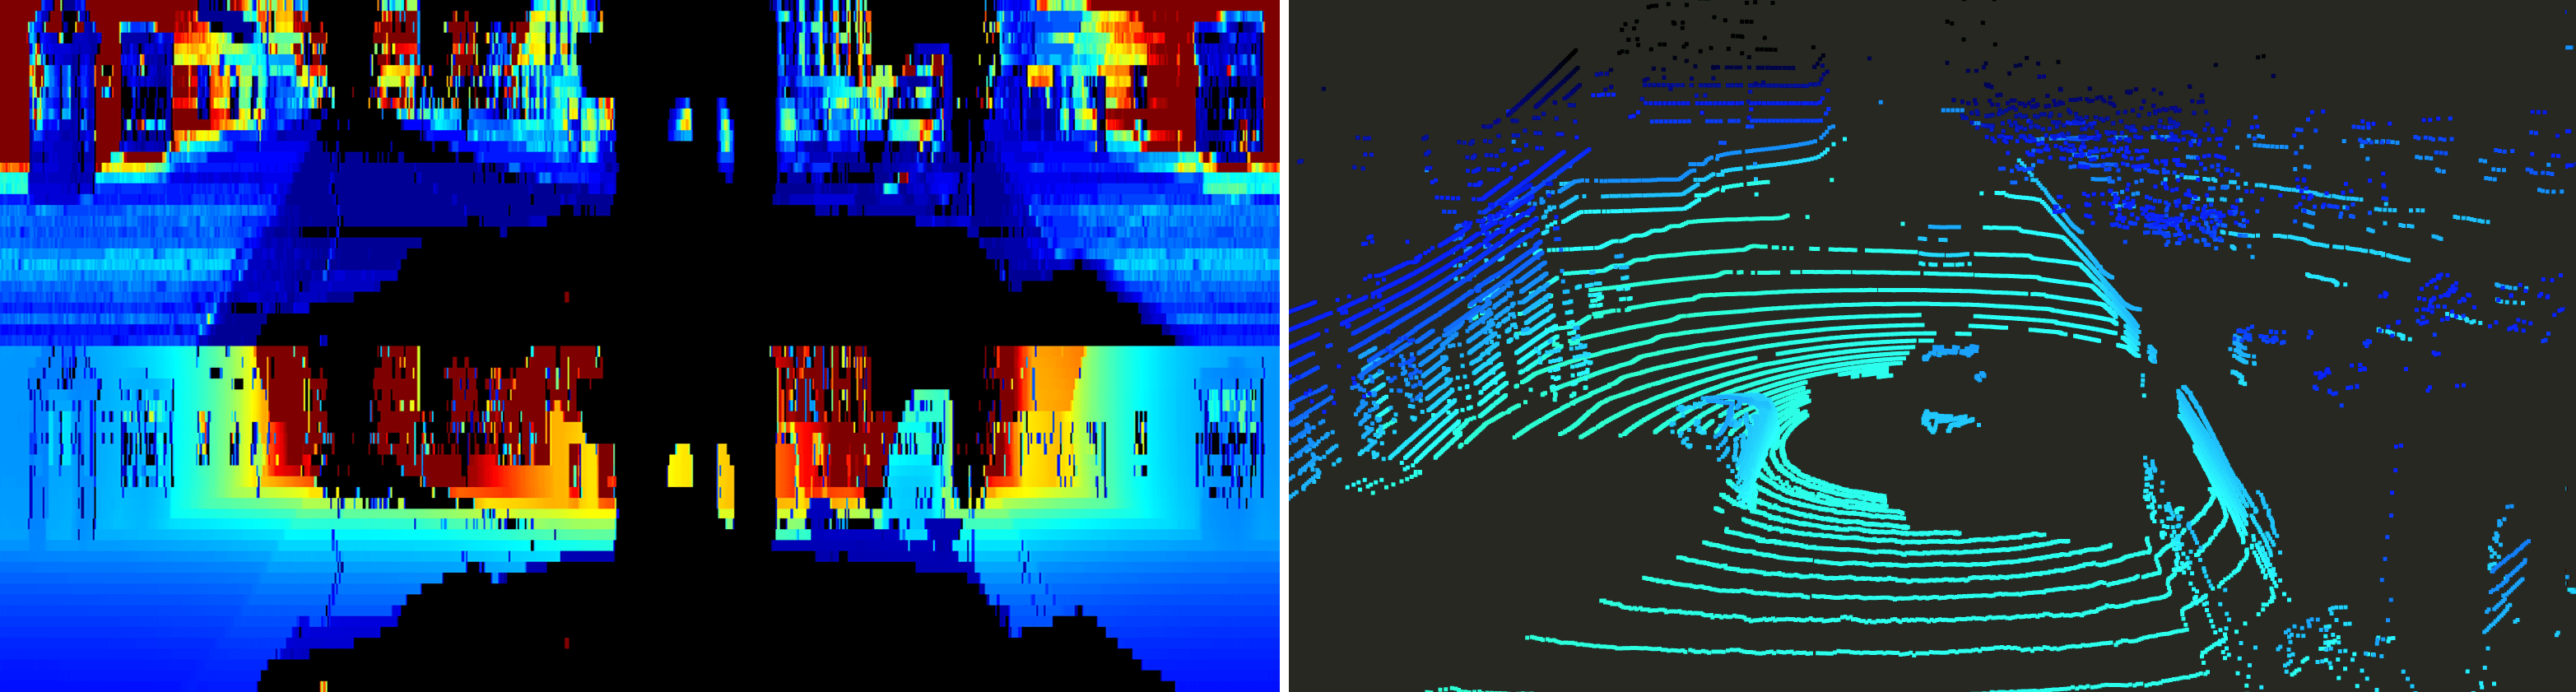 Raw Velodyne scan intensity and range returns  in Polar form (left), with invalid pixels set to black and stretched colourmap to improve visibility, and a separate  Velodyne scan in Pointcloud form (right), with the vehicle in the center.